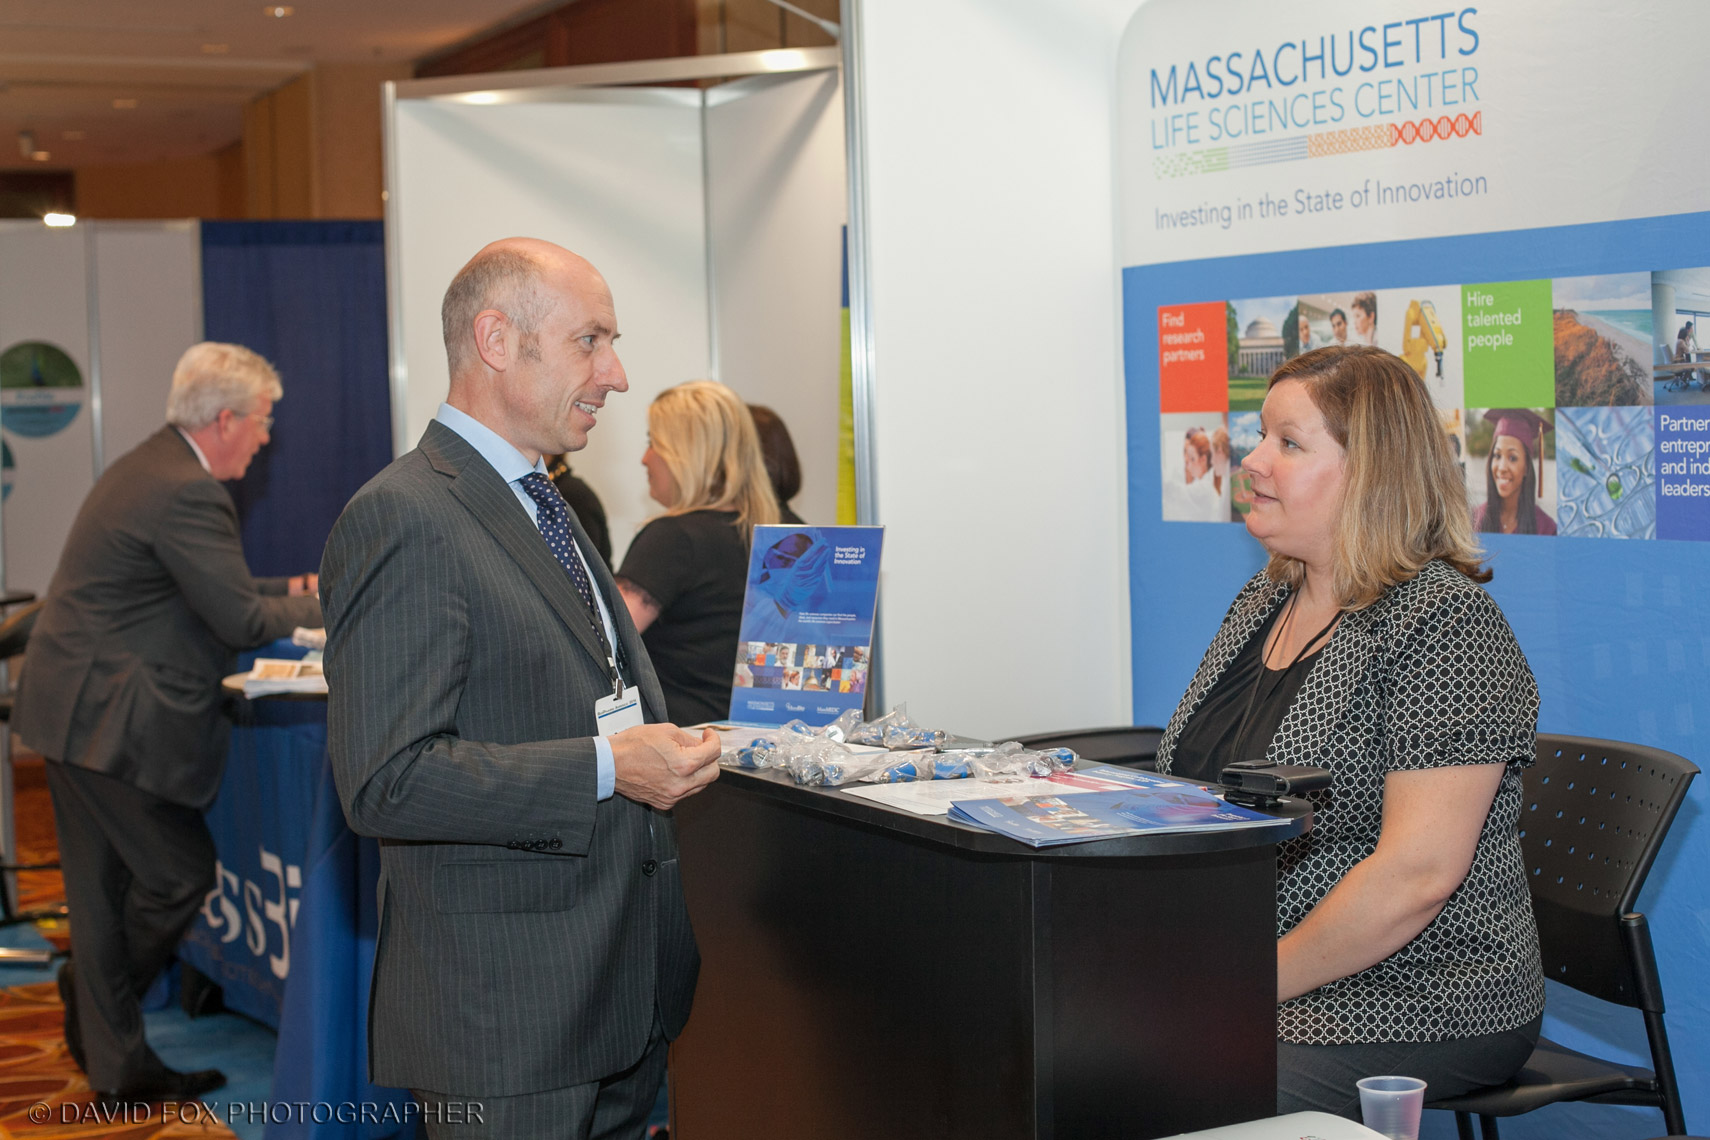 Conference Attendee Speaks with Vendor Representative